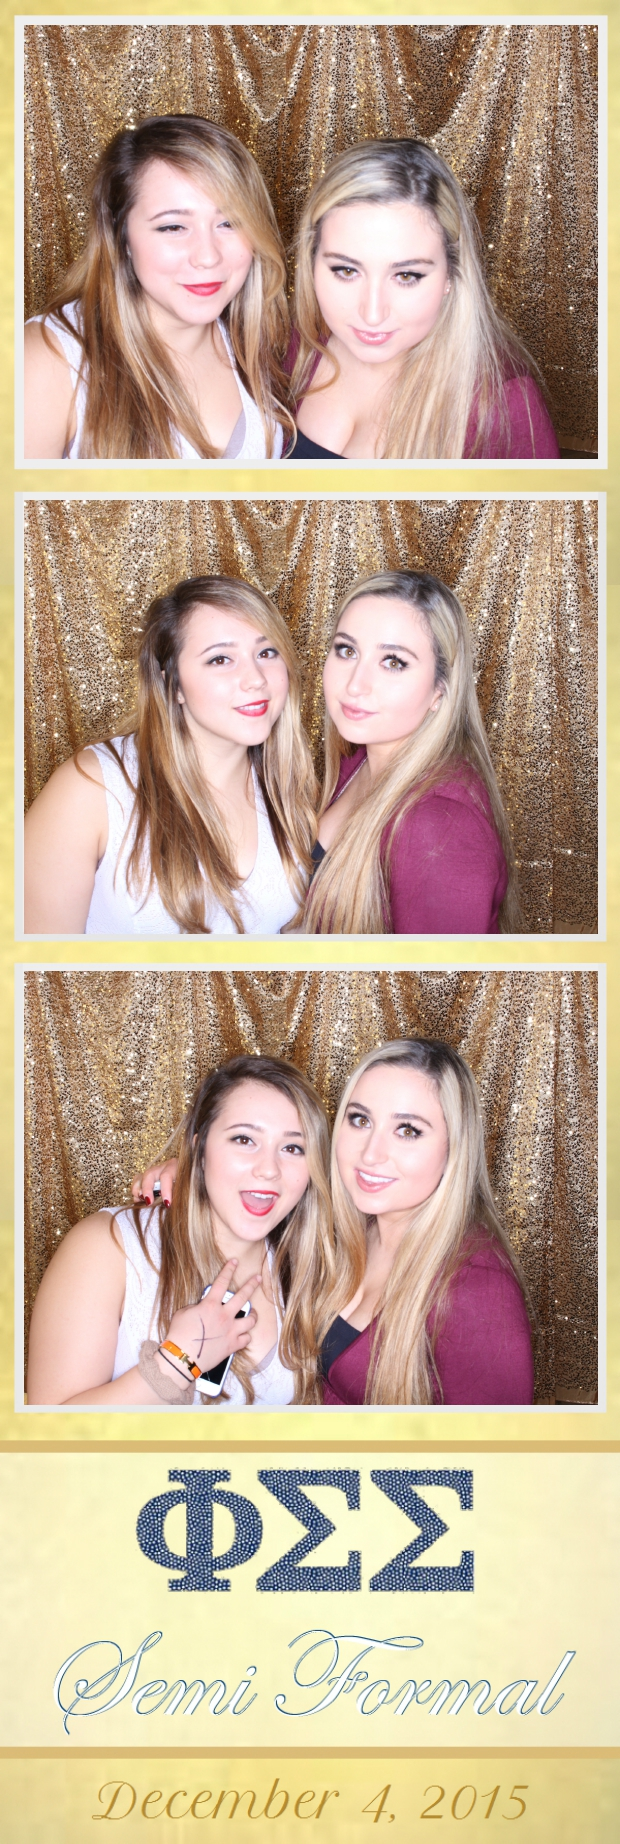 Guest House Events Photo Booth Phi Sigma Sigma Semi Formal (37).jpg